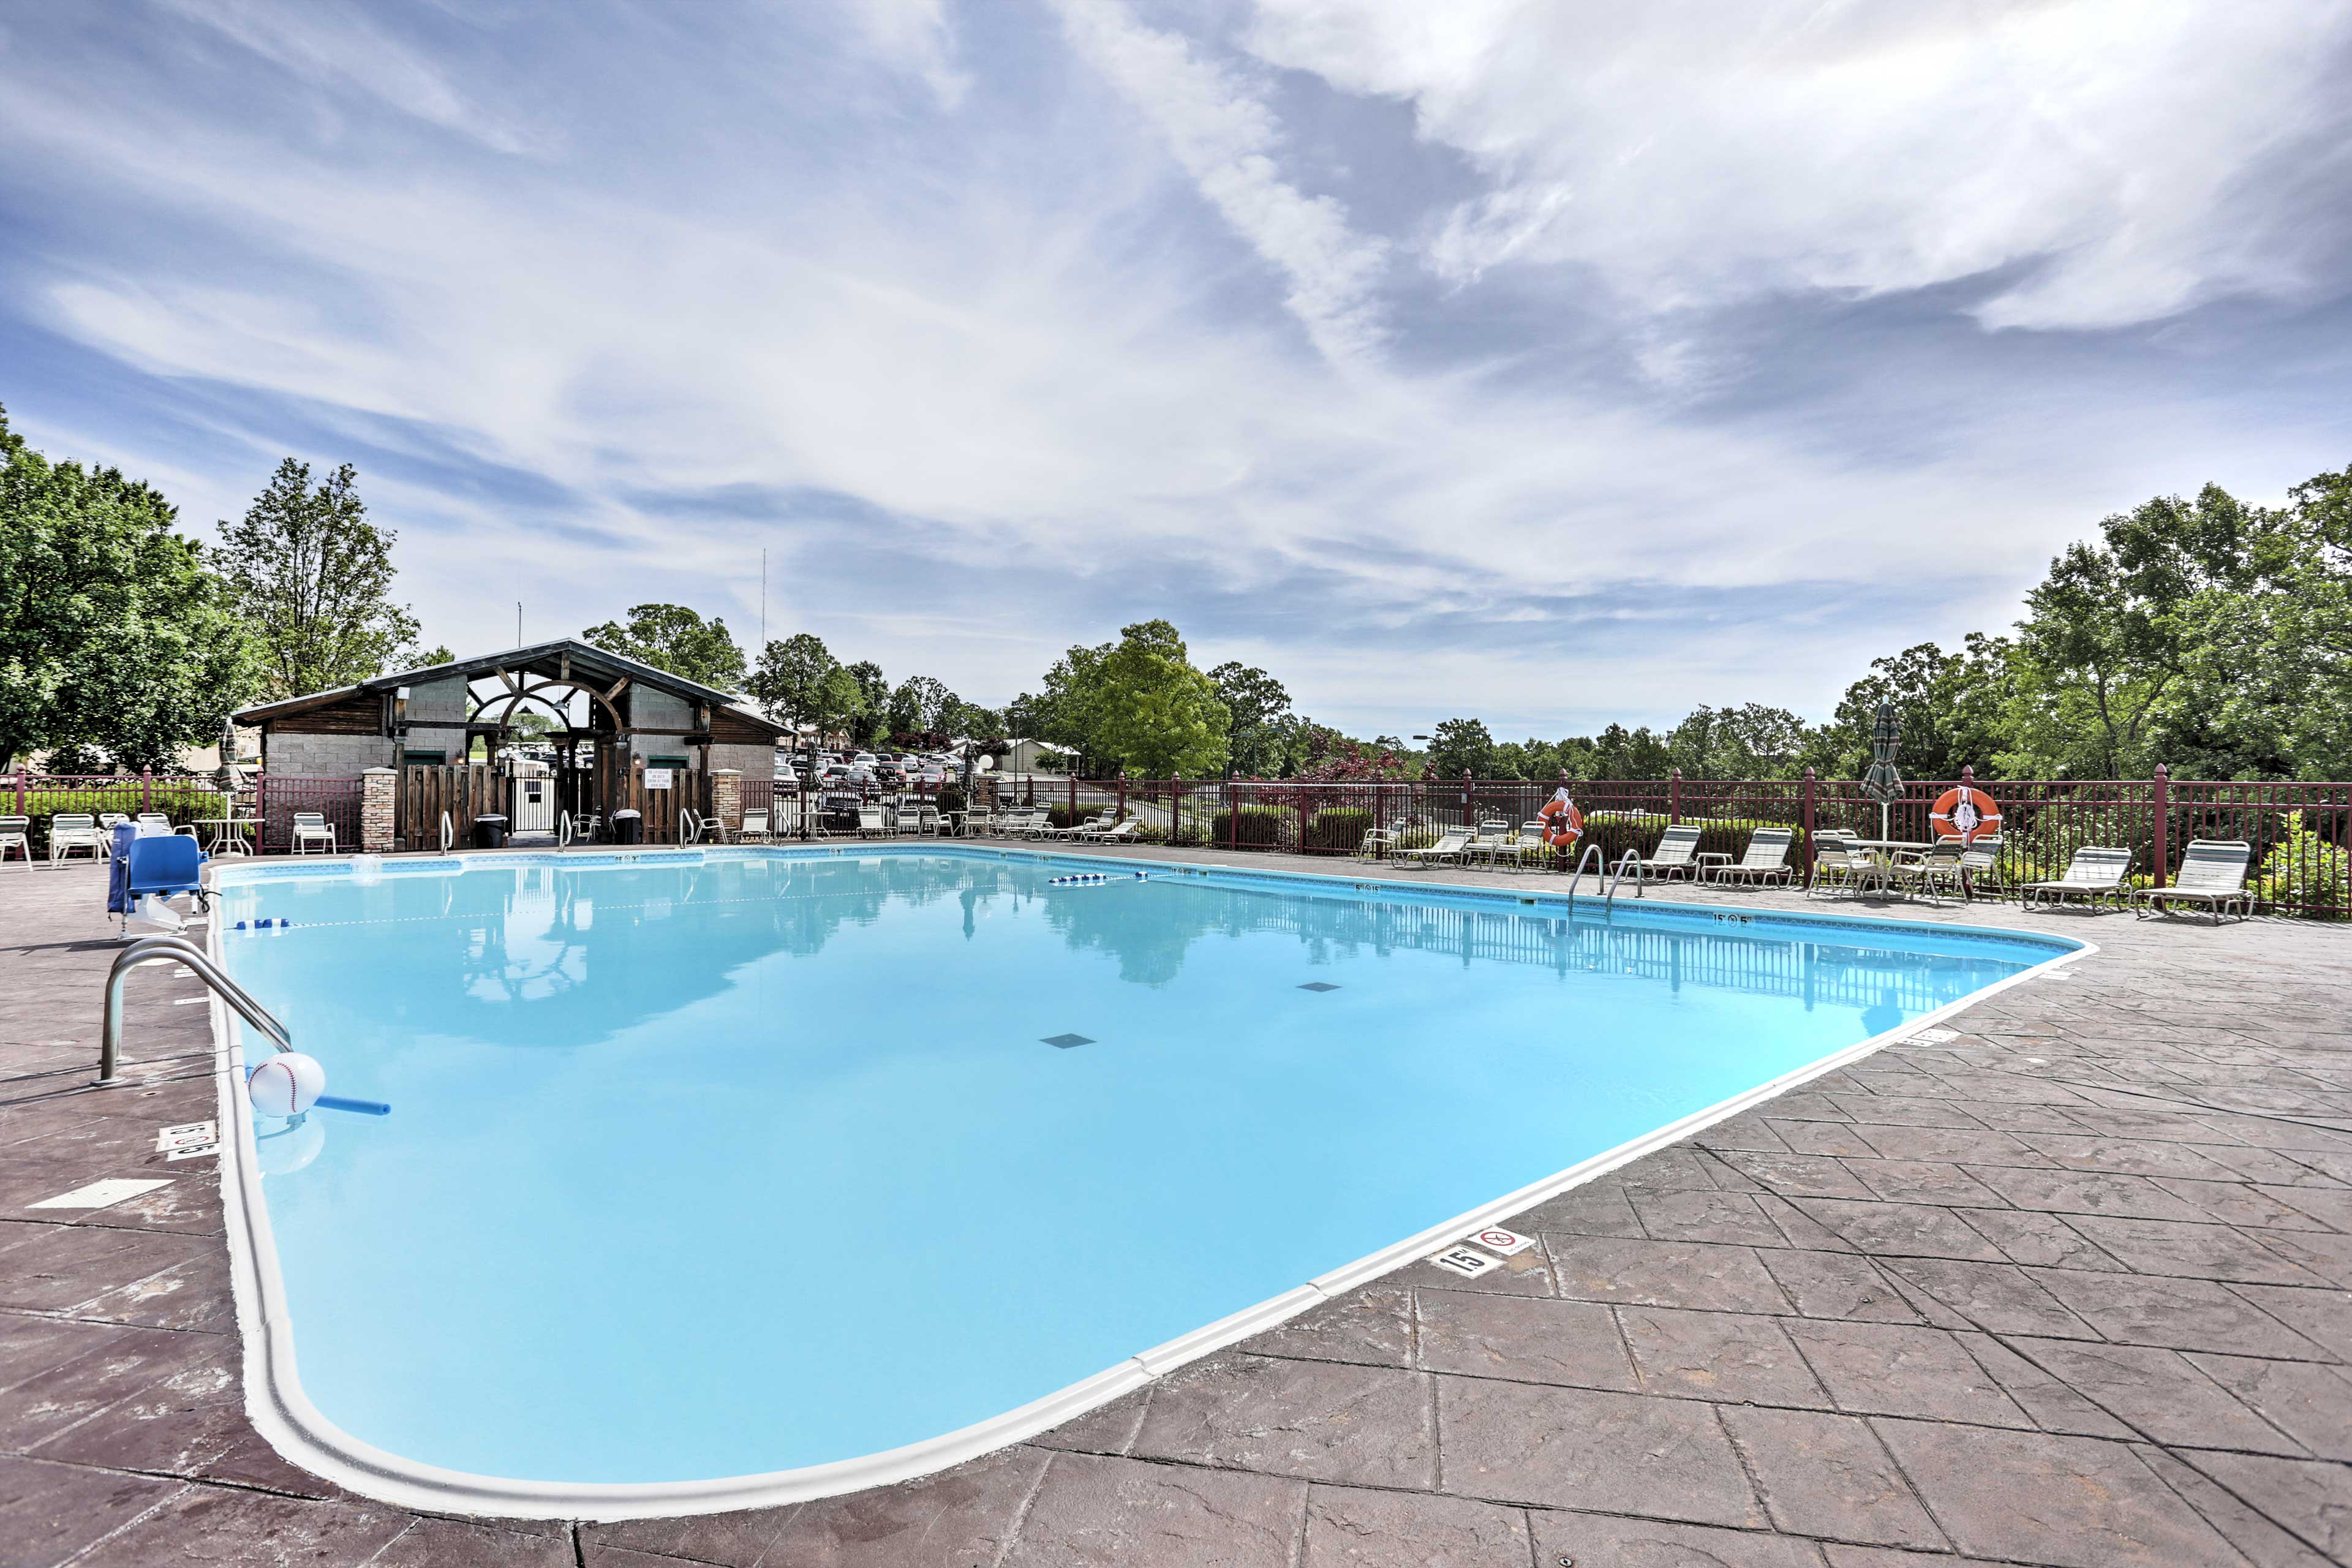 Make a splash in the large outdoor pool.